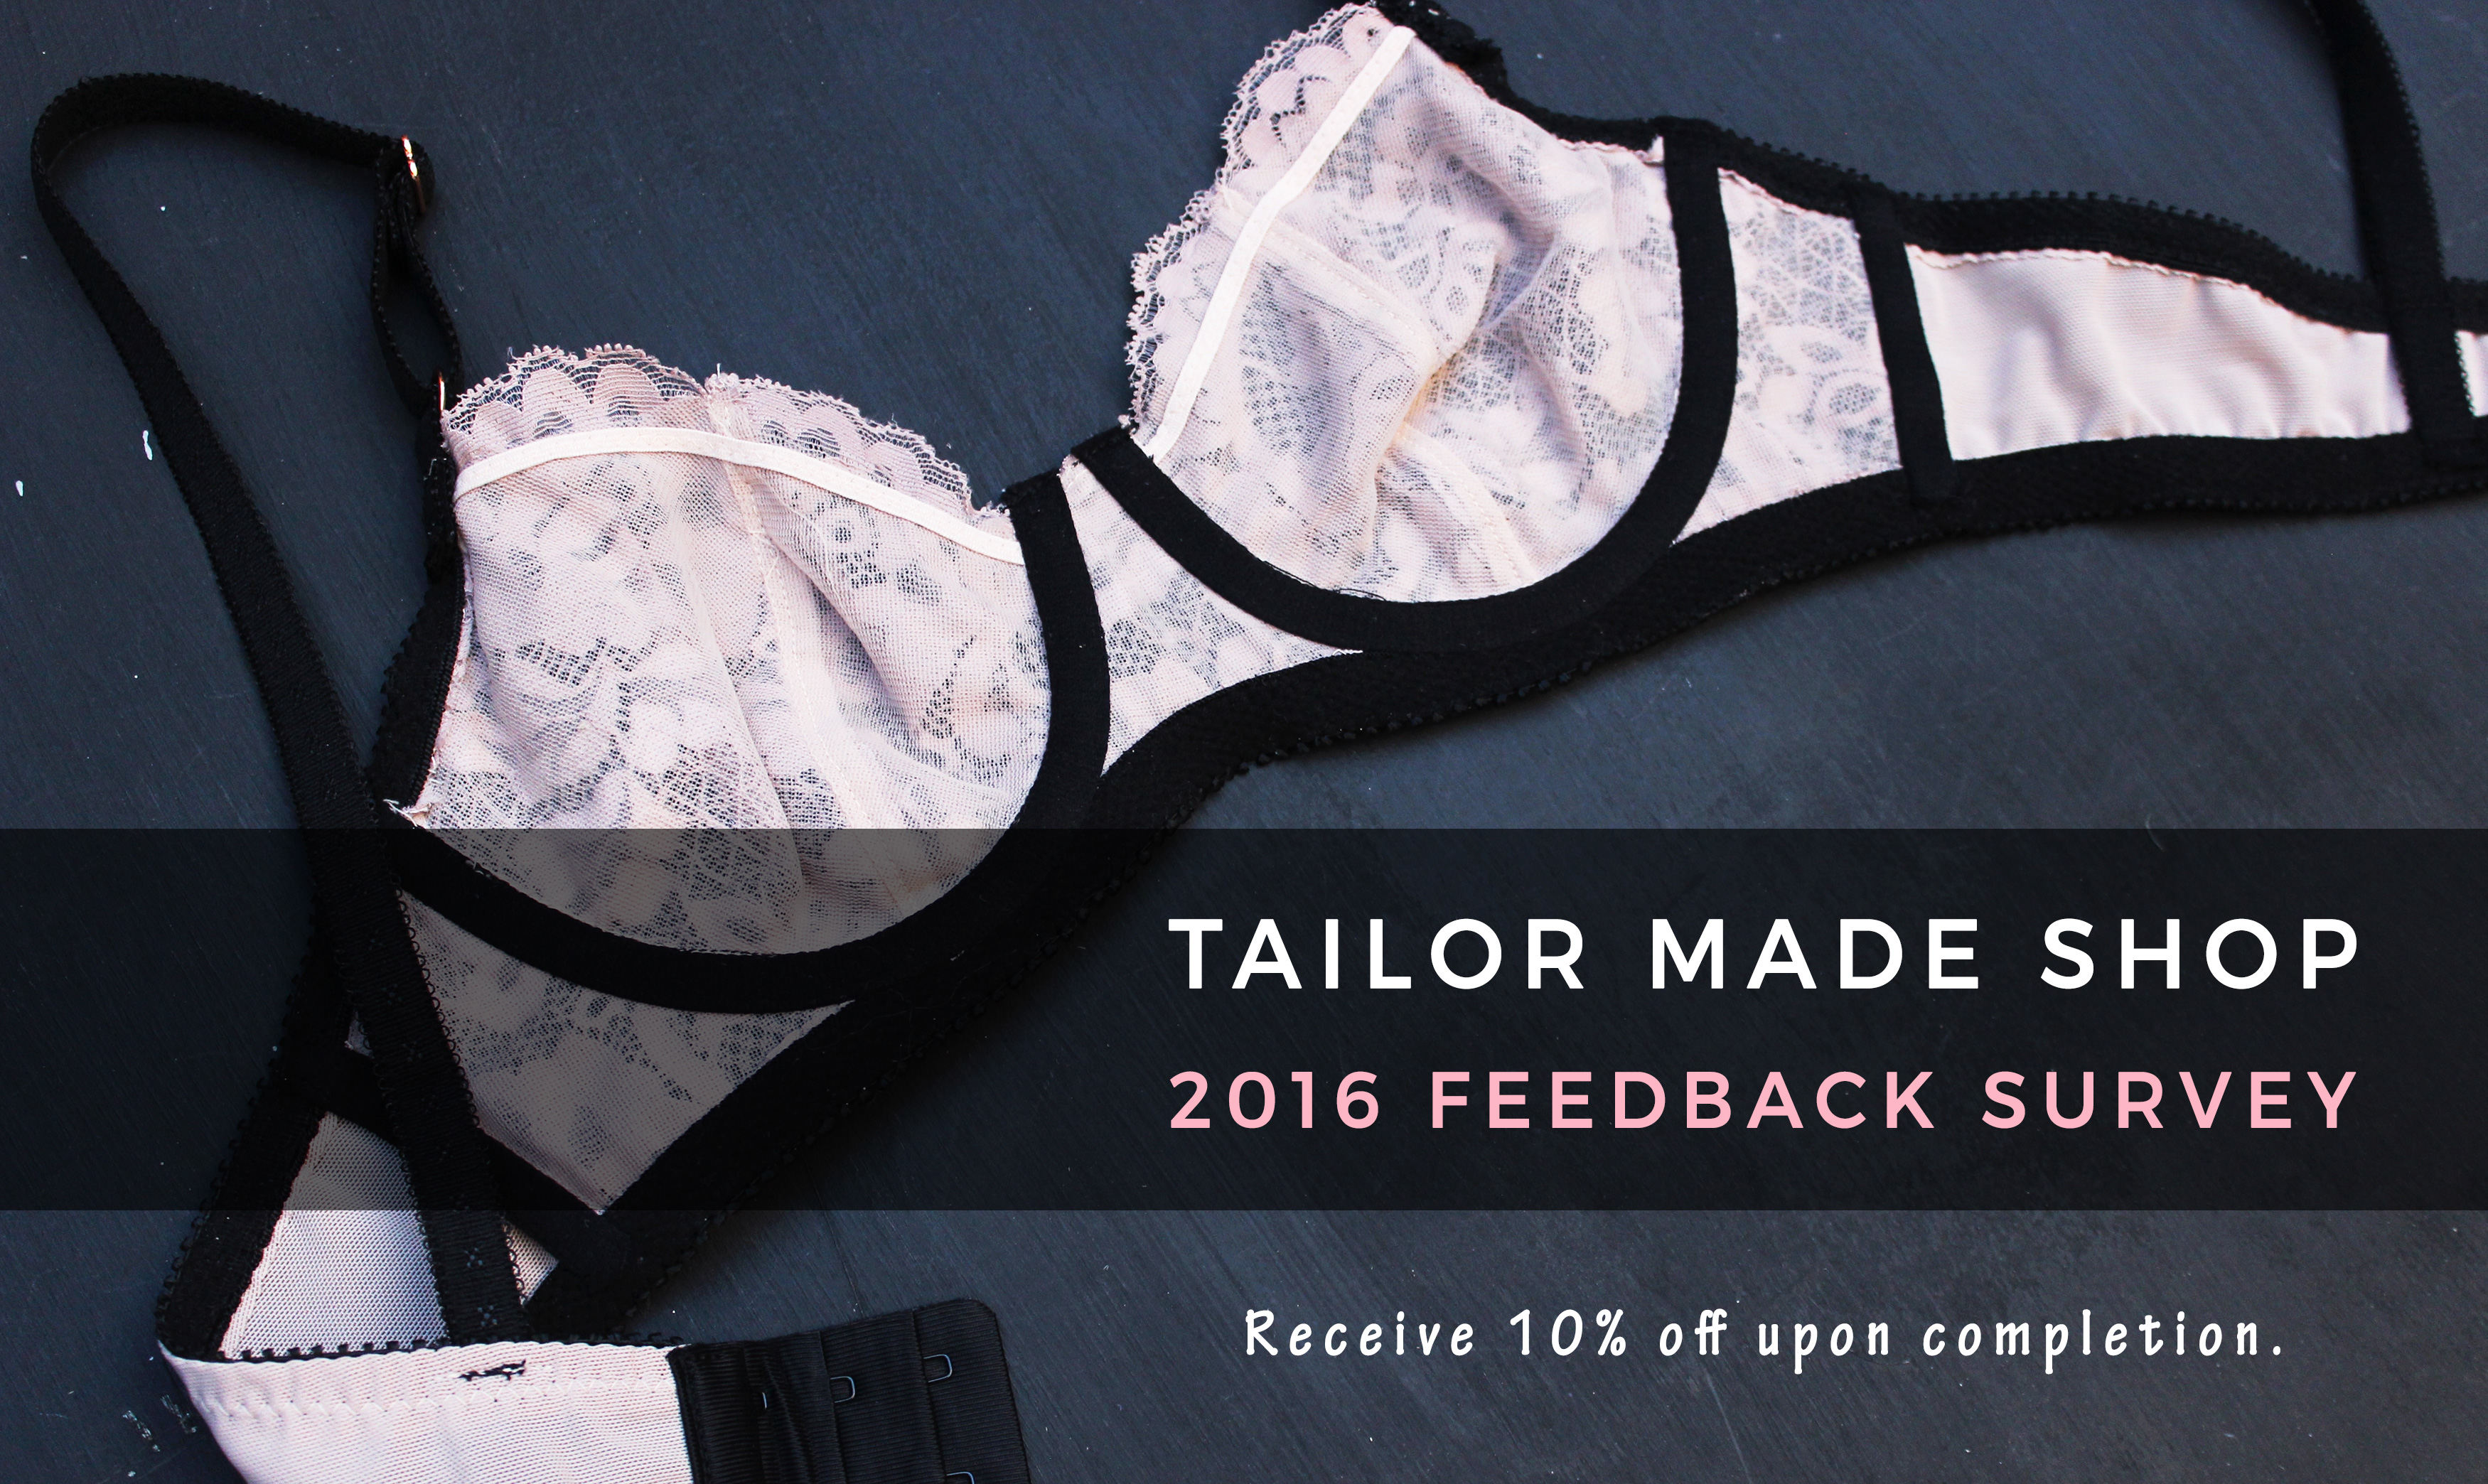 Tailor Made Shop 2016 Feedback Survey